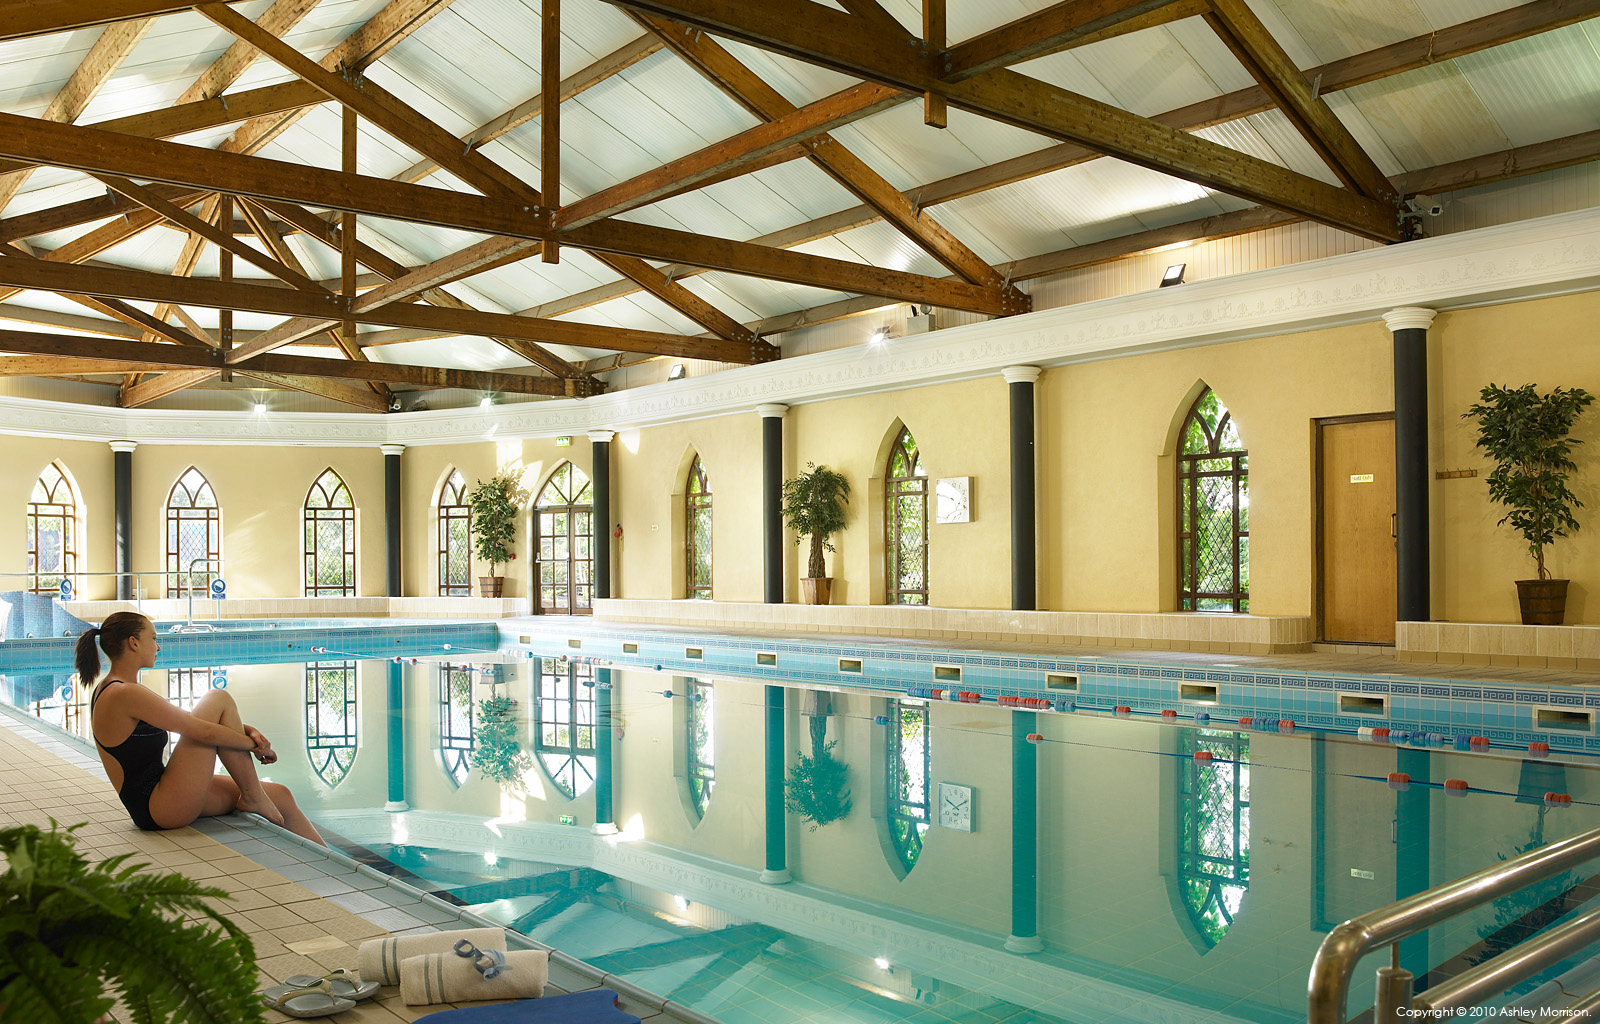 The swimming pool at the Abbey Court Hotel in County Tipperary town of Nenagh.